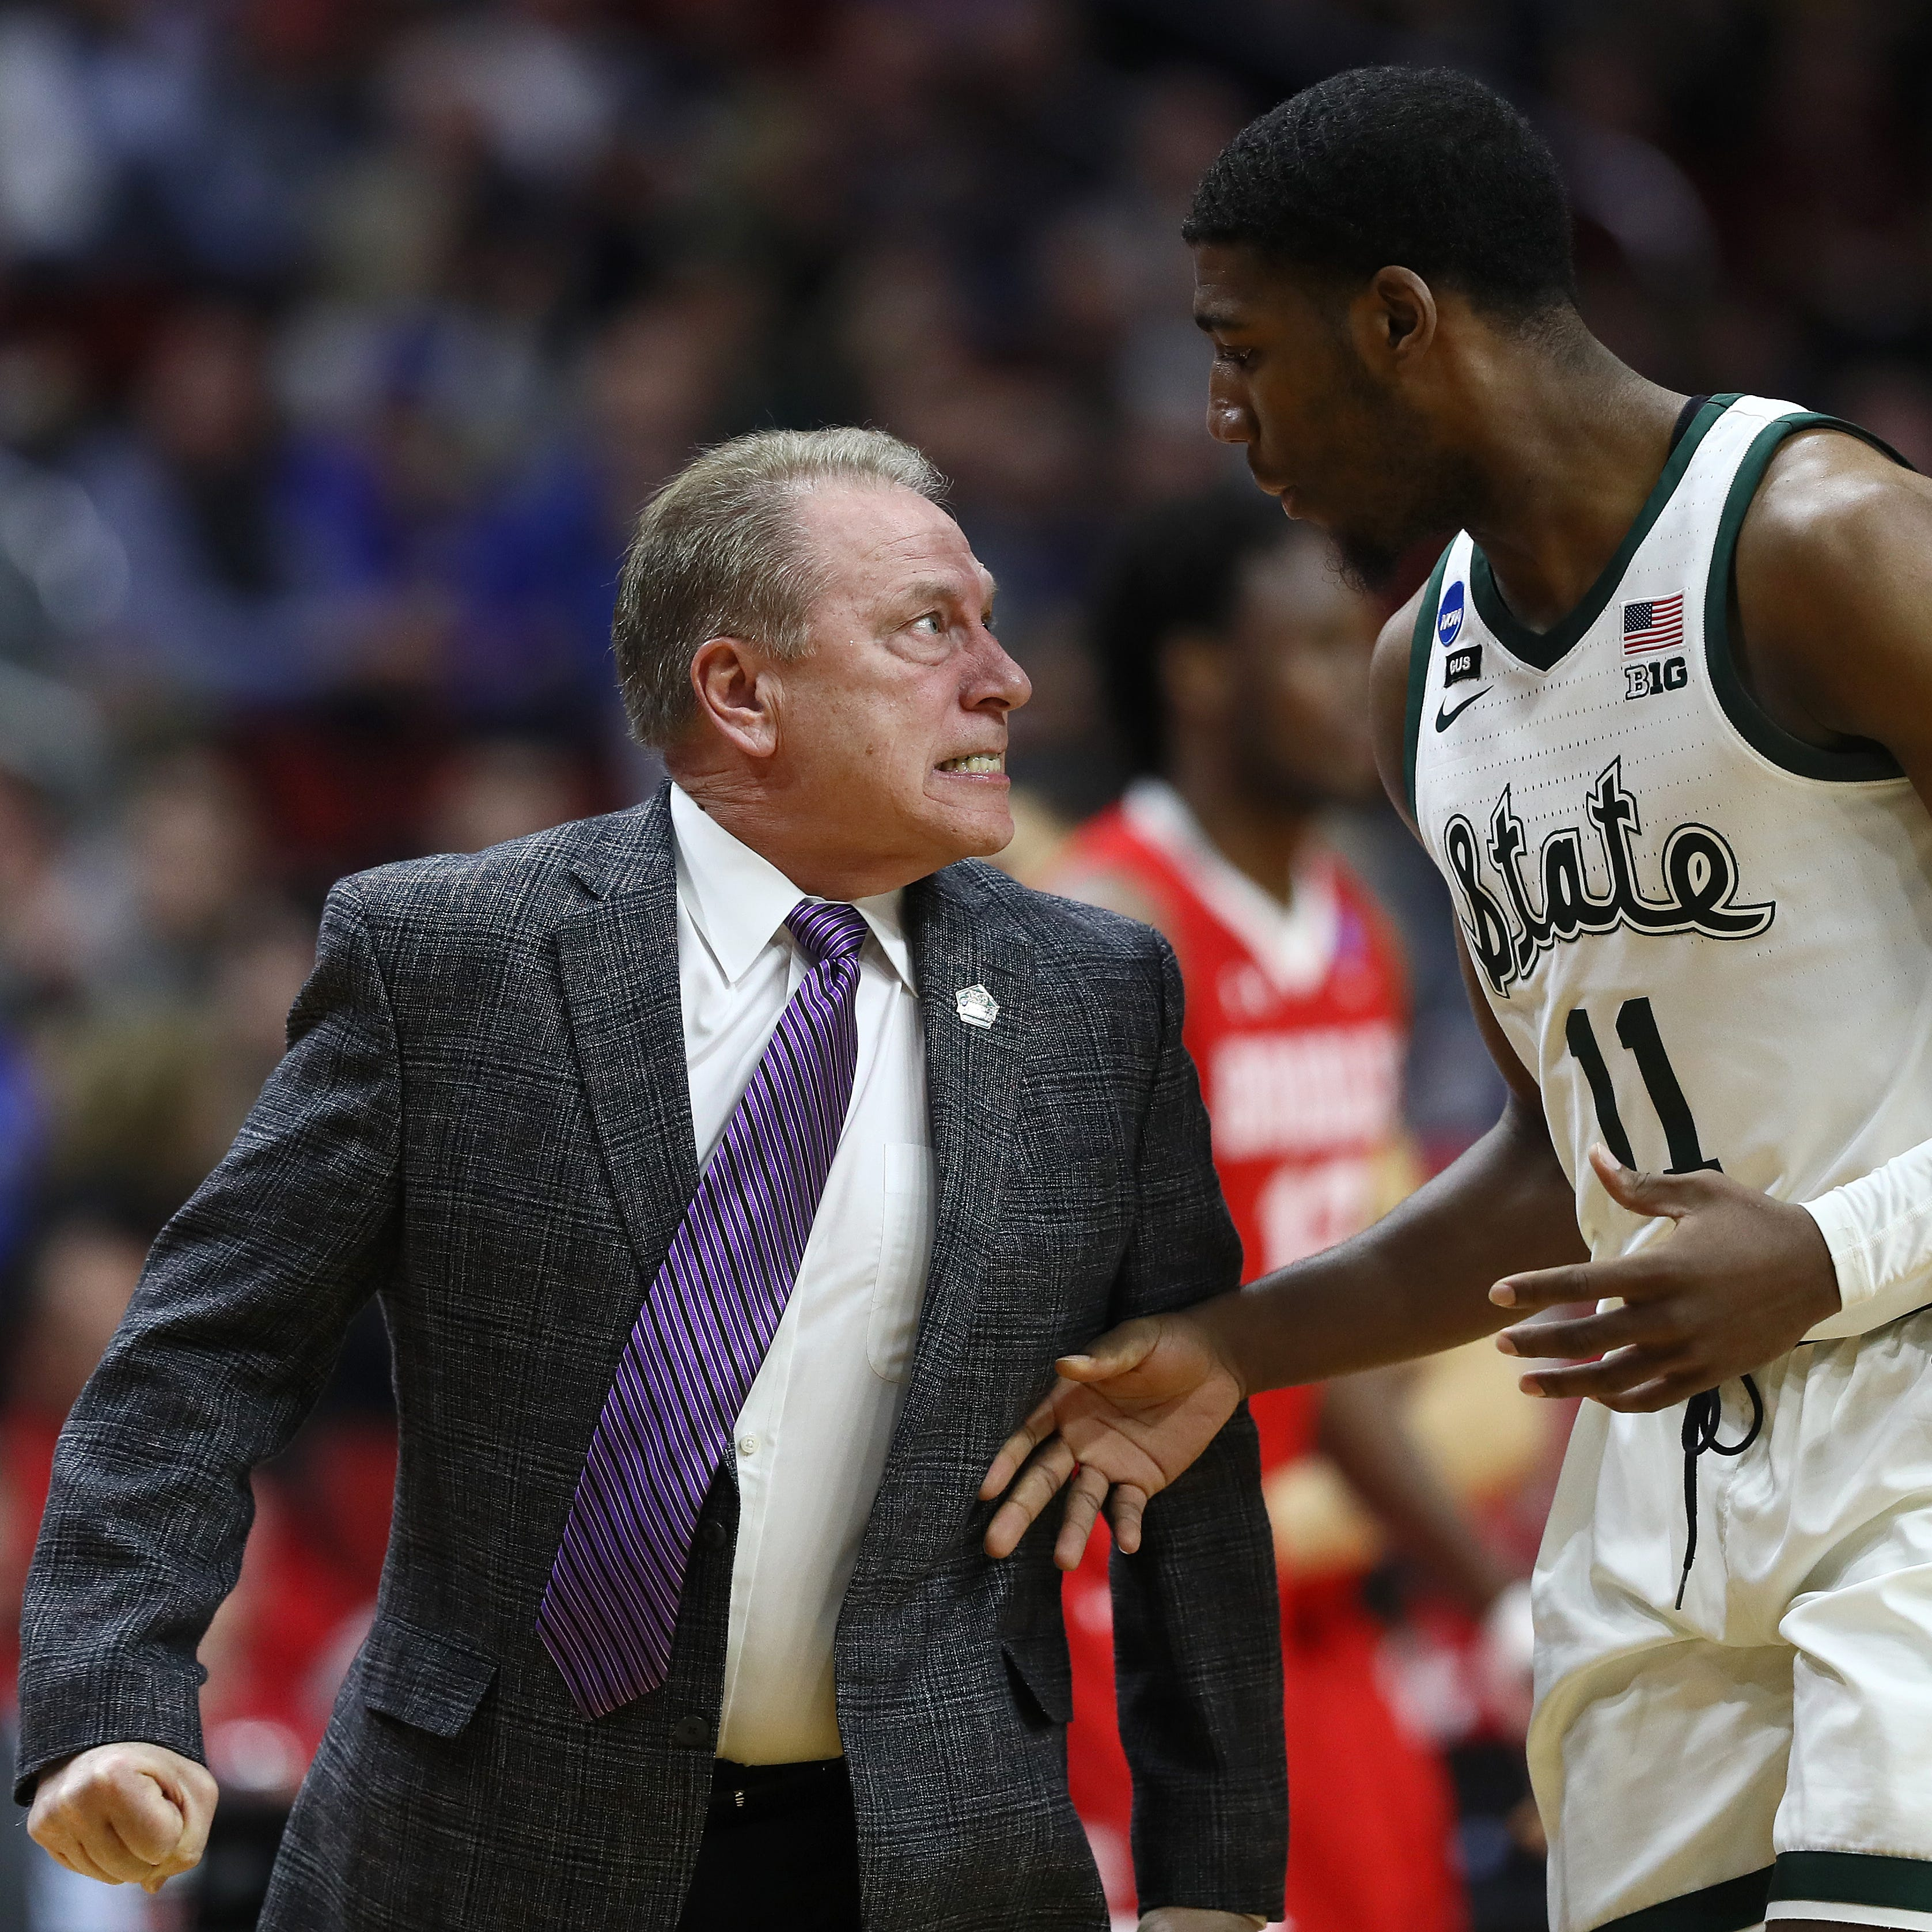 Tom Izzo had some epic outbursts in Michigan State's win over Bradley